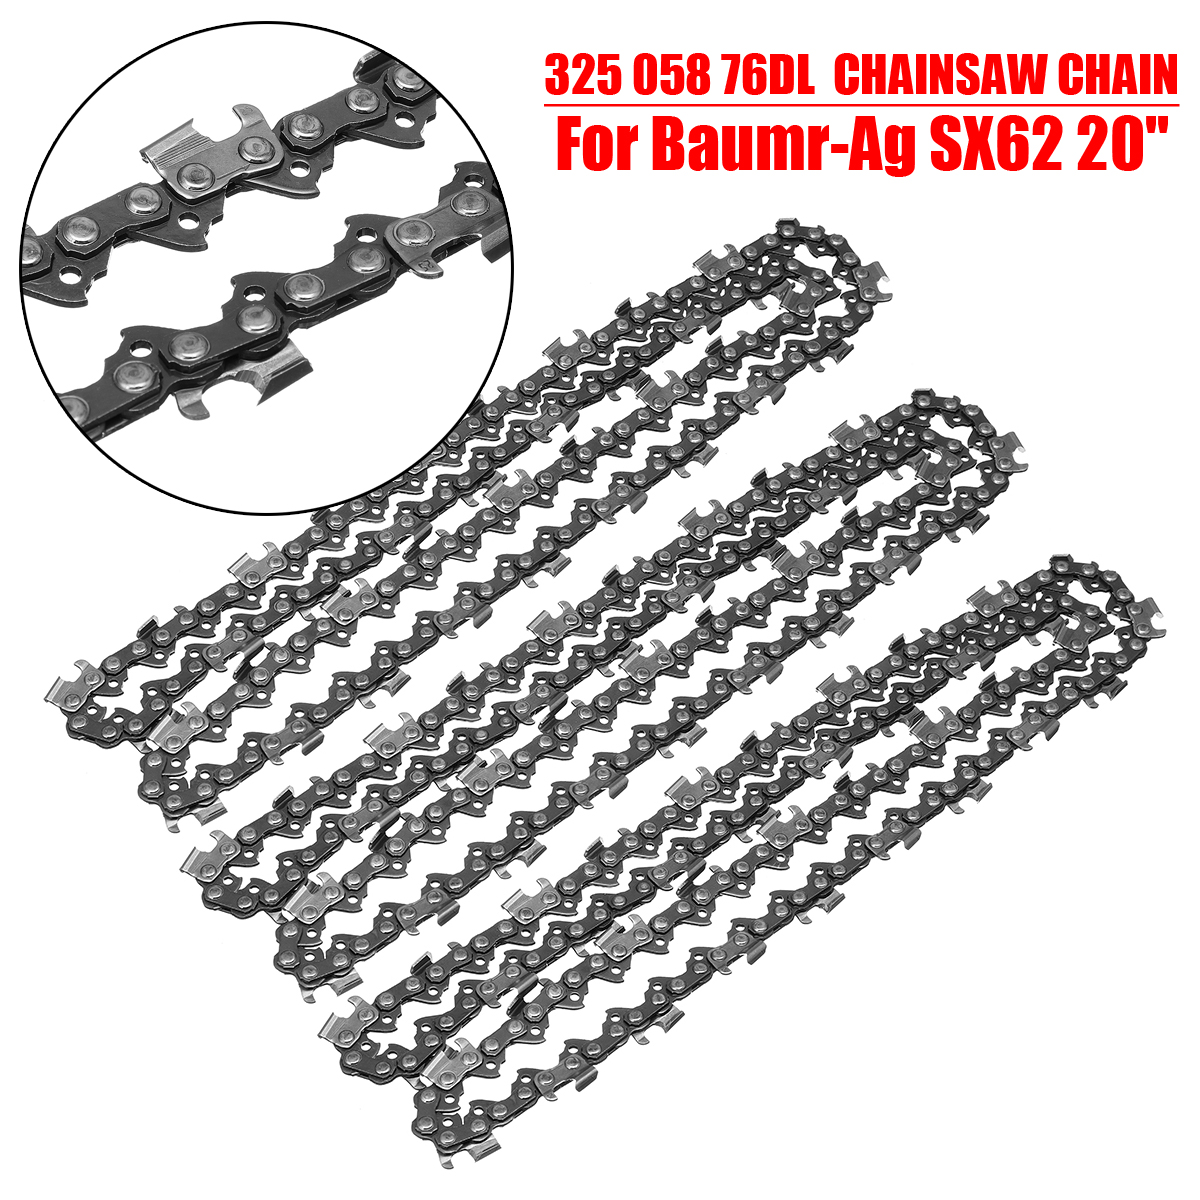 3pcs 20'' 325 058 76DL Chainsaw Chain Saw Replaces For Baumr-Ag SX62 Electrical Tools Accessories